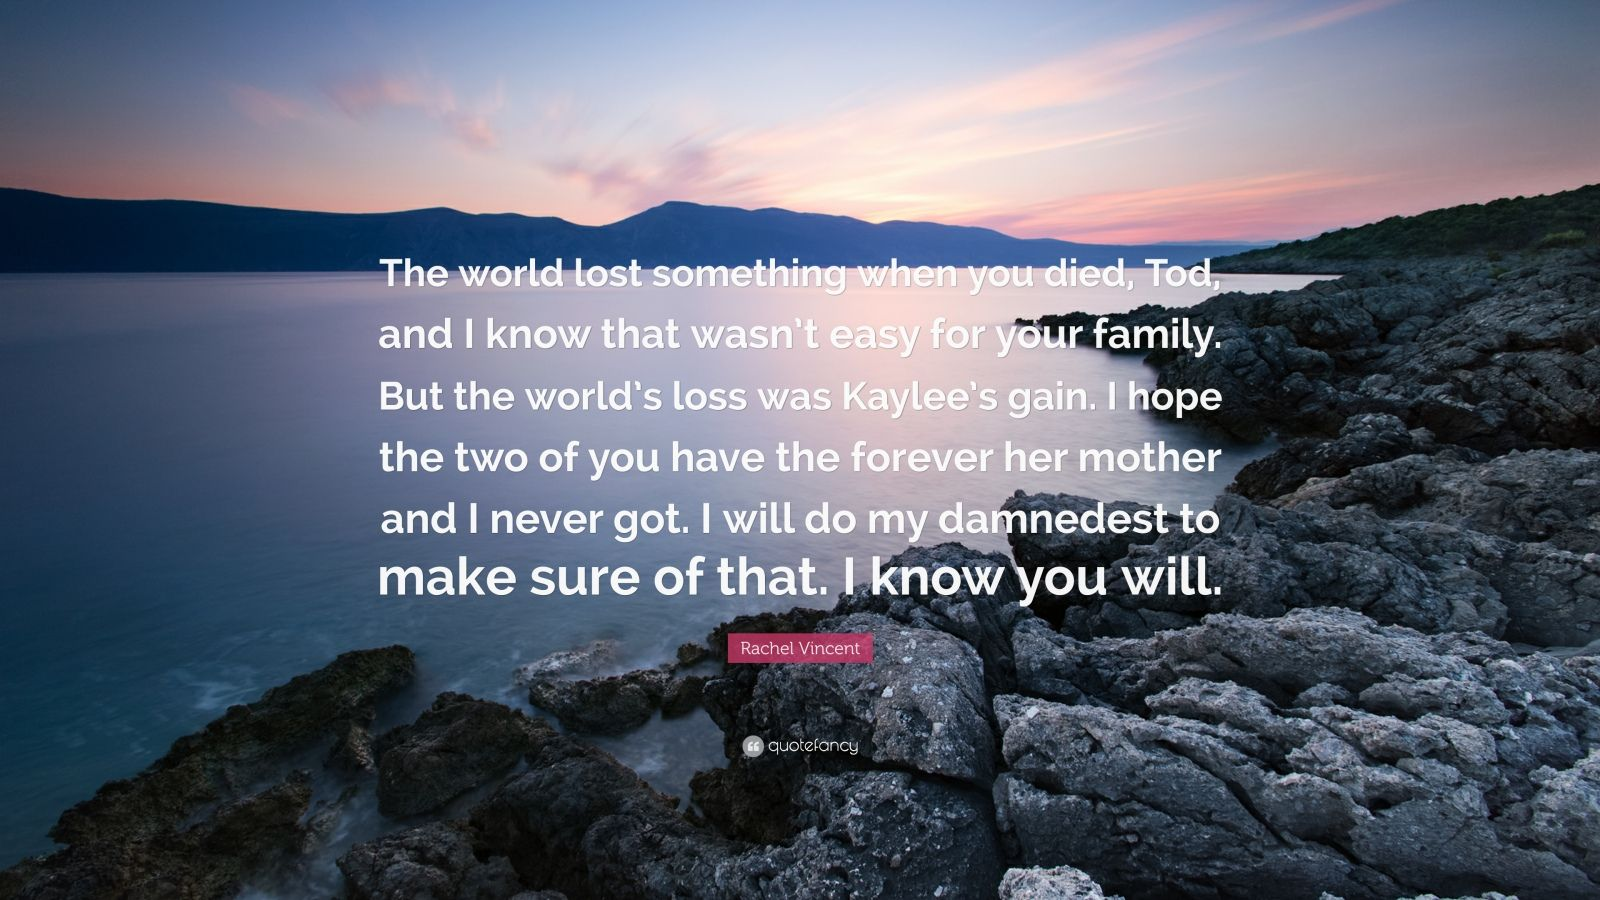 "Rachel Vincent Quote: ""The world lost something when you died, Tod, and I know that wasn't easy for your family. But the world's loss was Kaylee's gain. I hope the two of you have the forever her mother and I never got. I will do my damnedest to make sure of that. I know you will."""